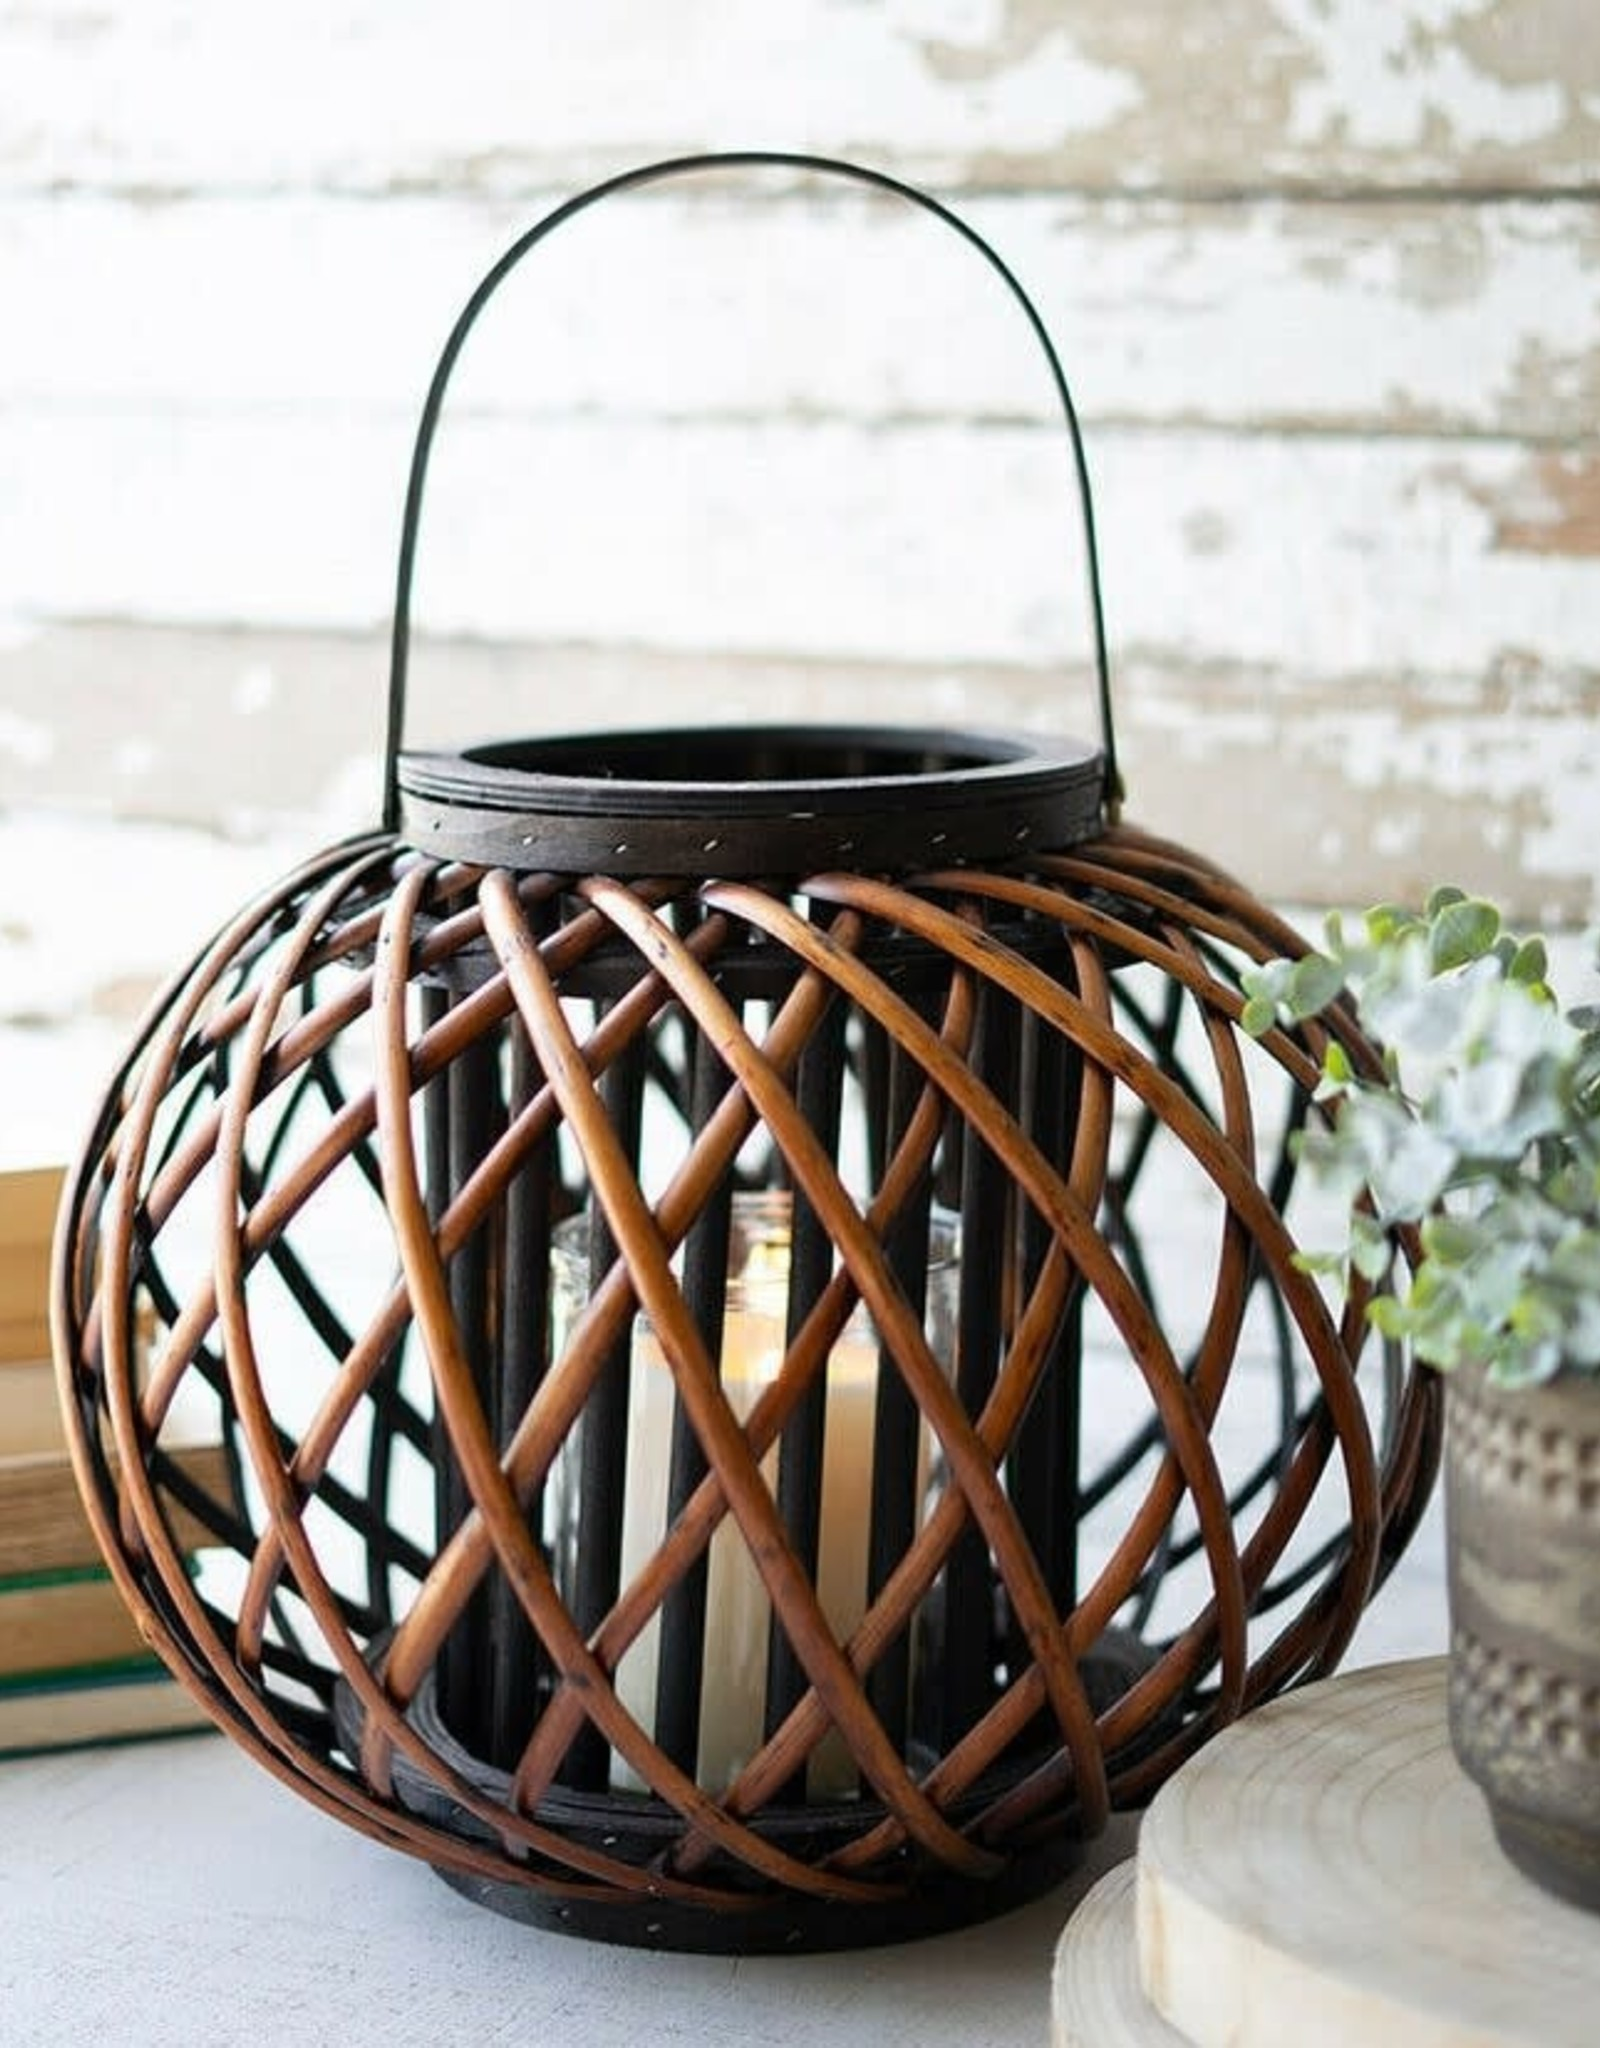 Kalalou Large Brown Willow Lantern with Wooden Handle